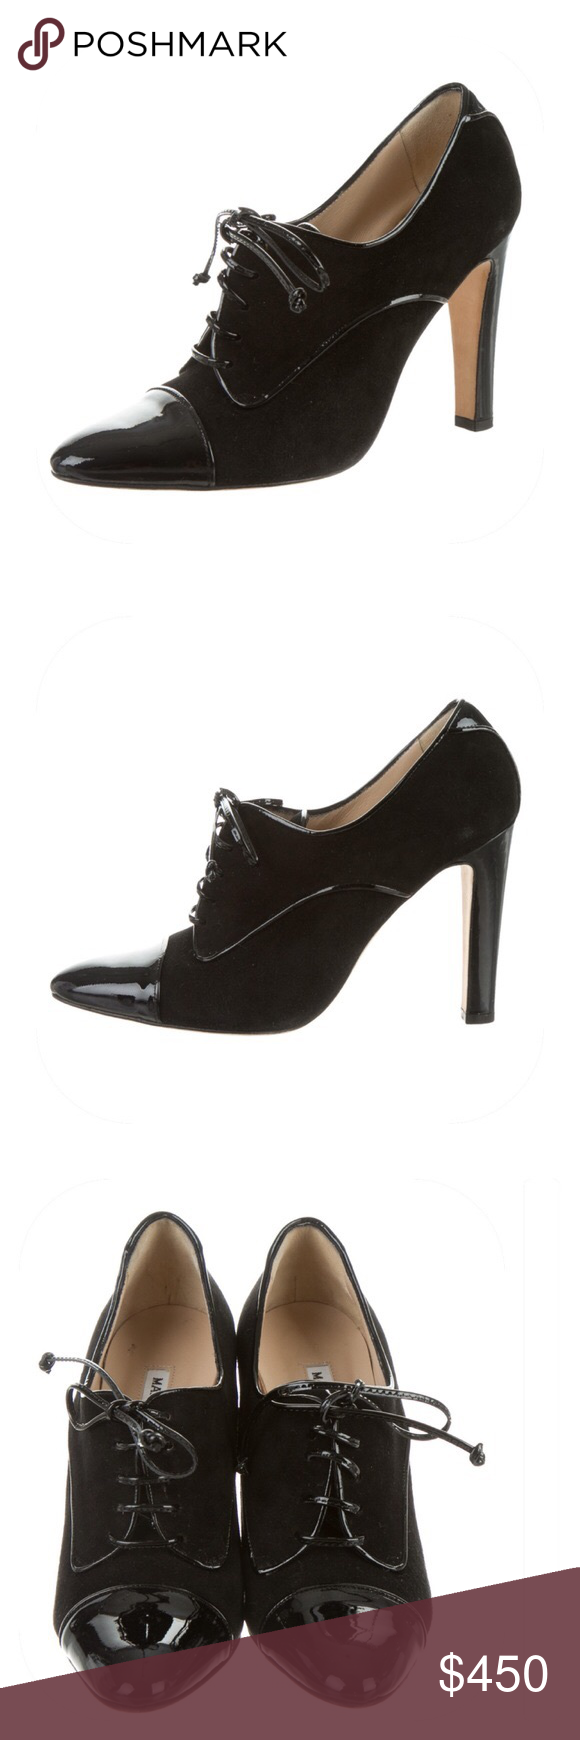 outlet affordable Manolo Blahnik Cap-Toe Leather Booties clearance cheapest price 3Is3RnV73